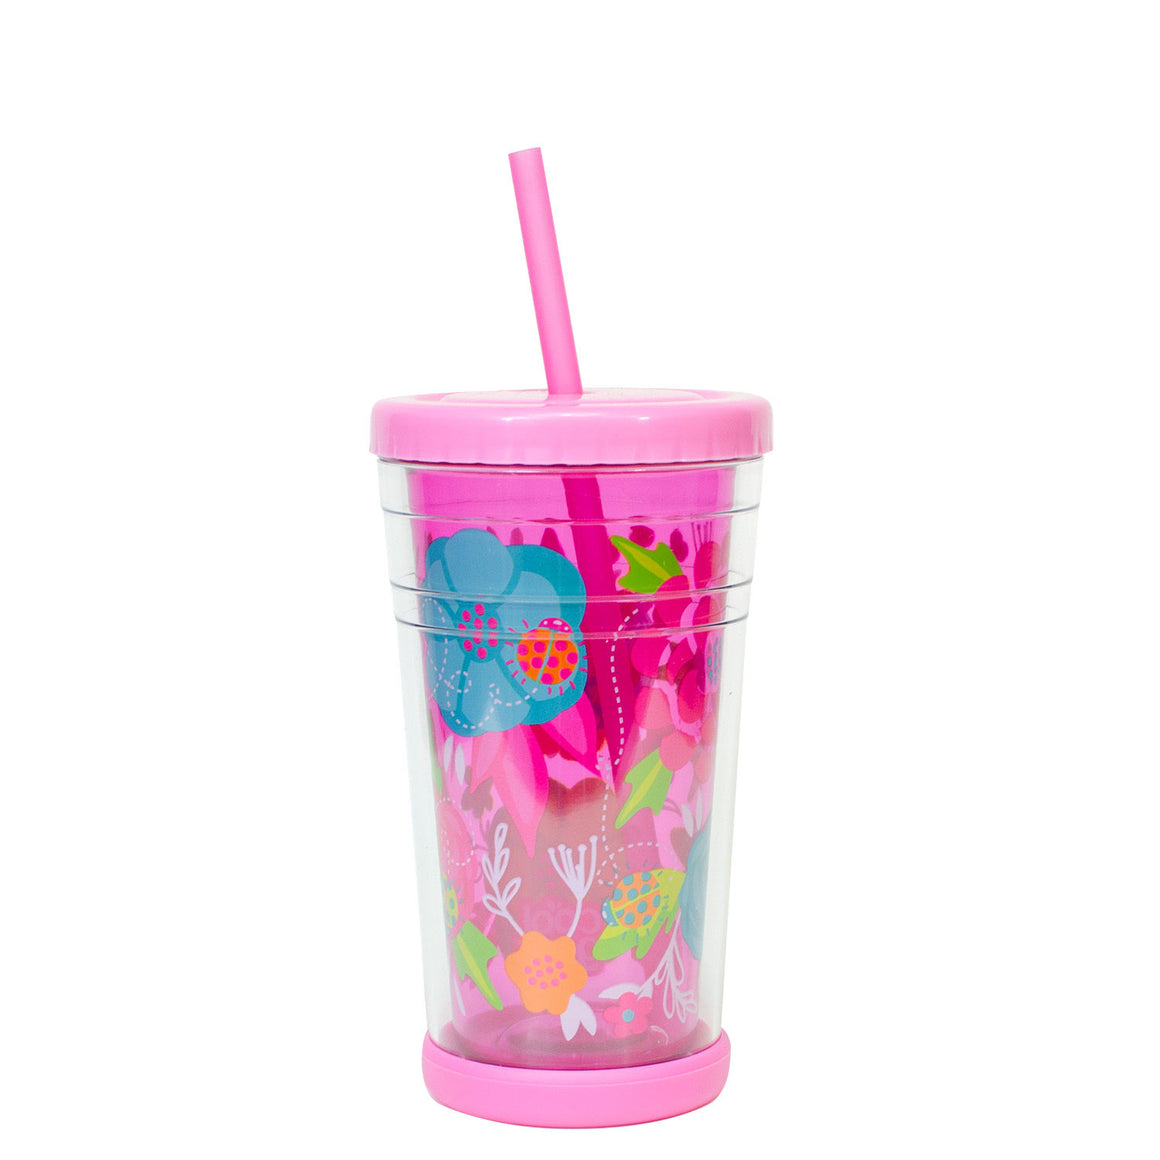 Cool Gear | 12 Oz Easter Printed Chiller Tumbler in Pastel Pink / Flowers